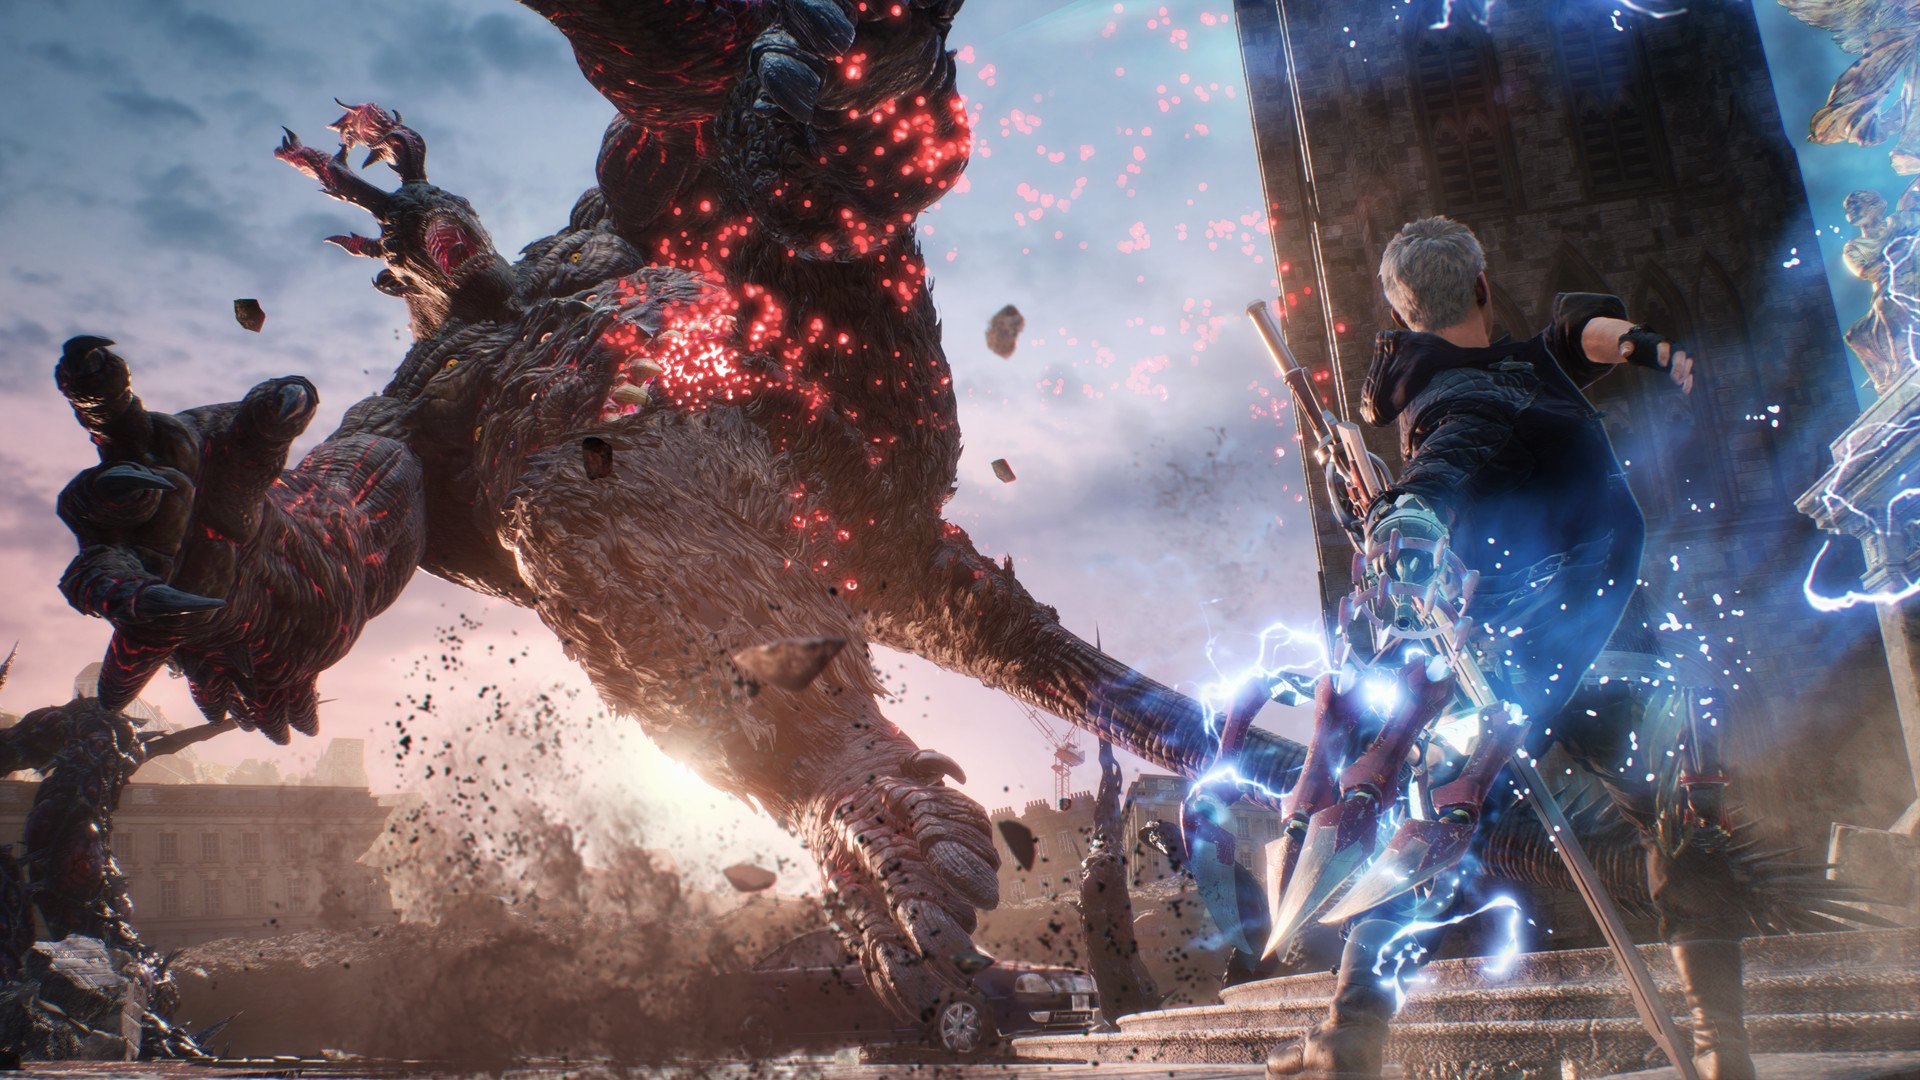 Each playable character in Devil May Cry 5 has a combat style all their own, which makes for a diverse combat experience.